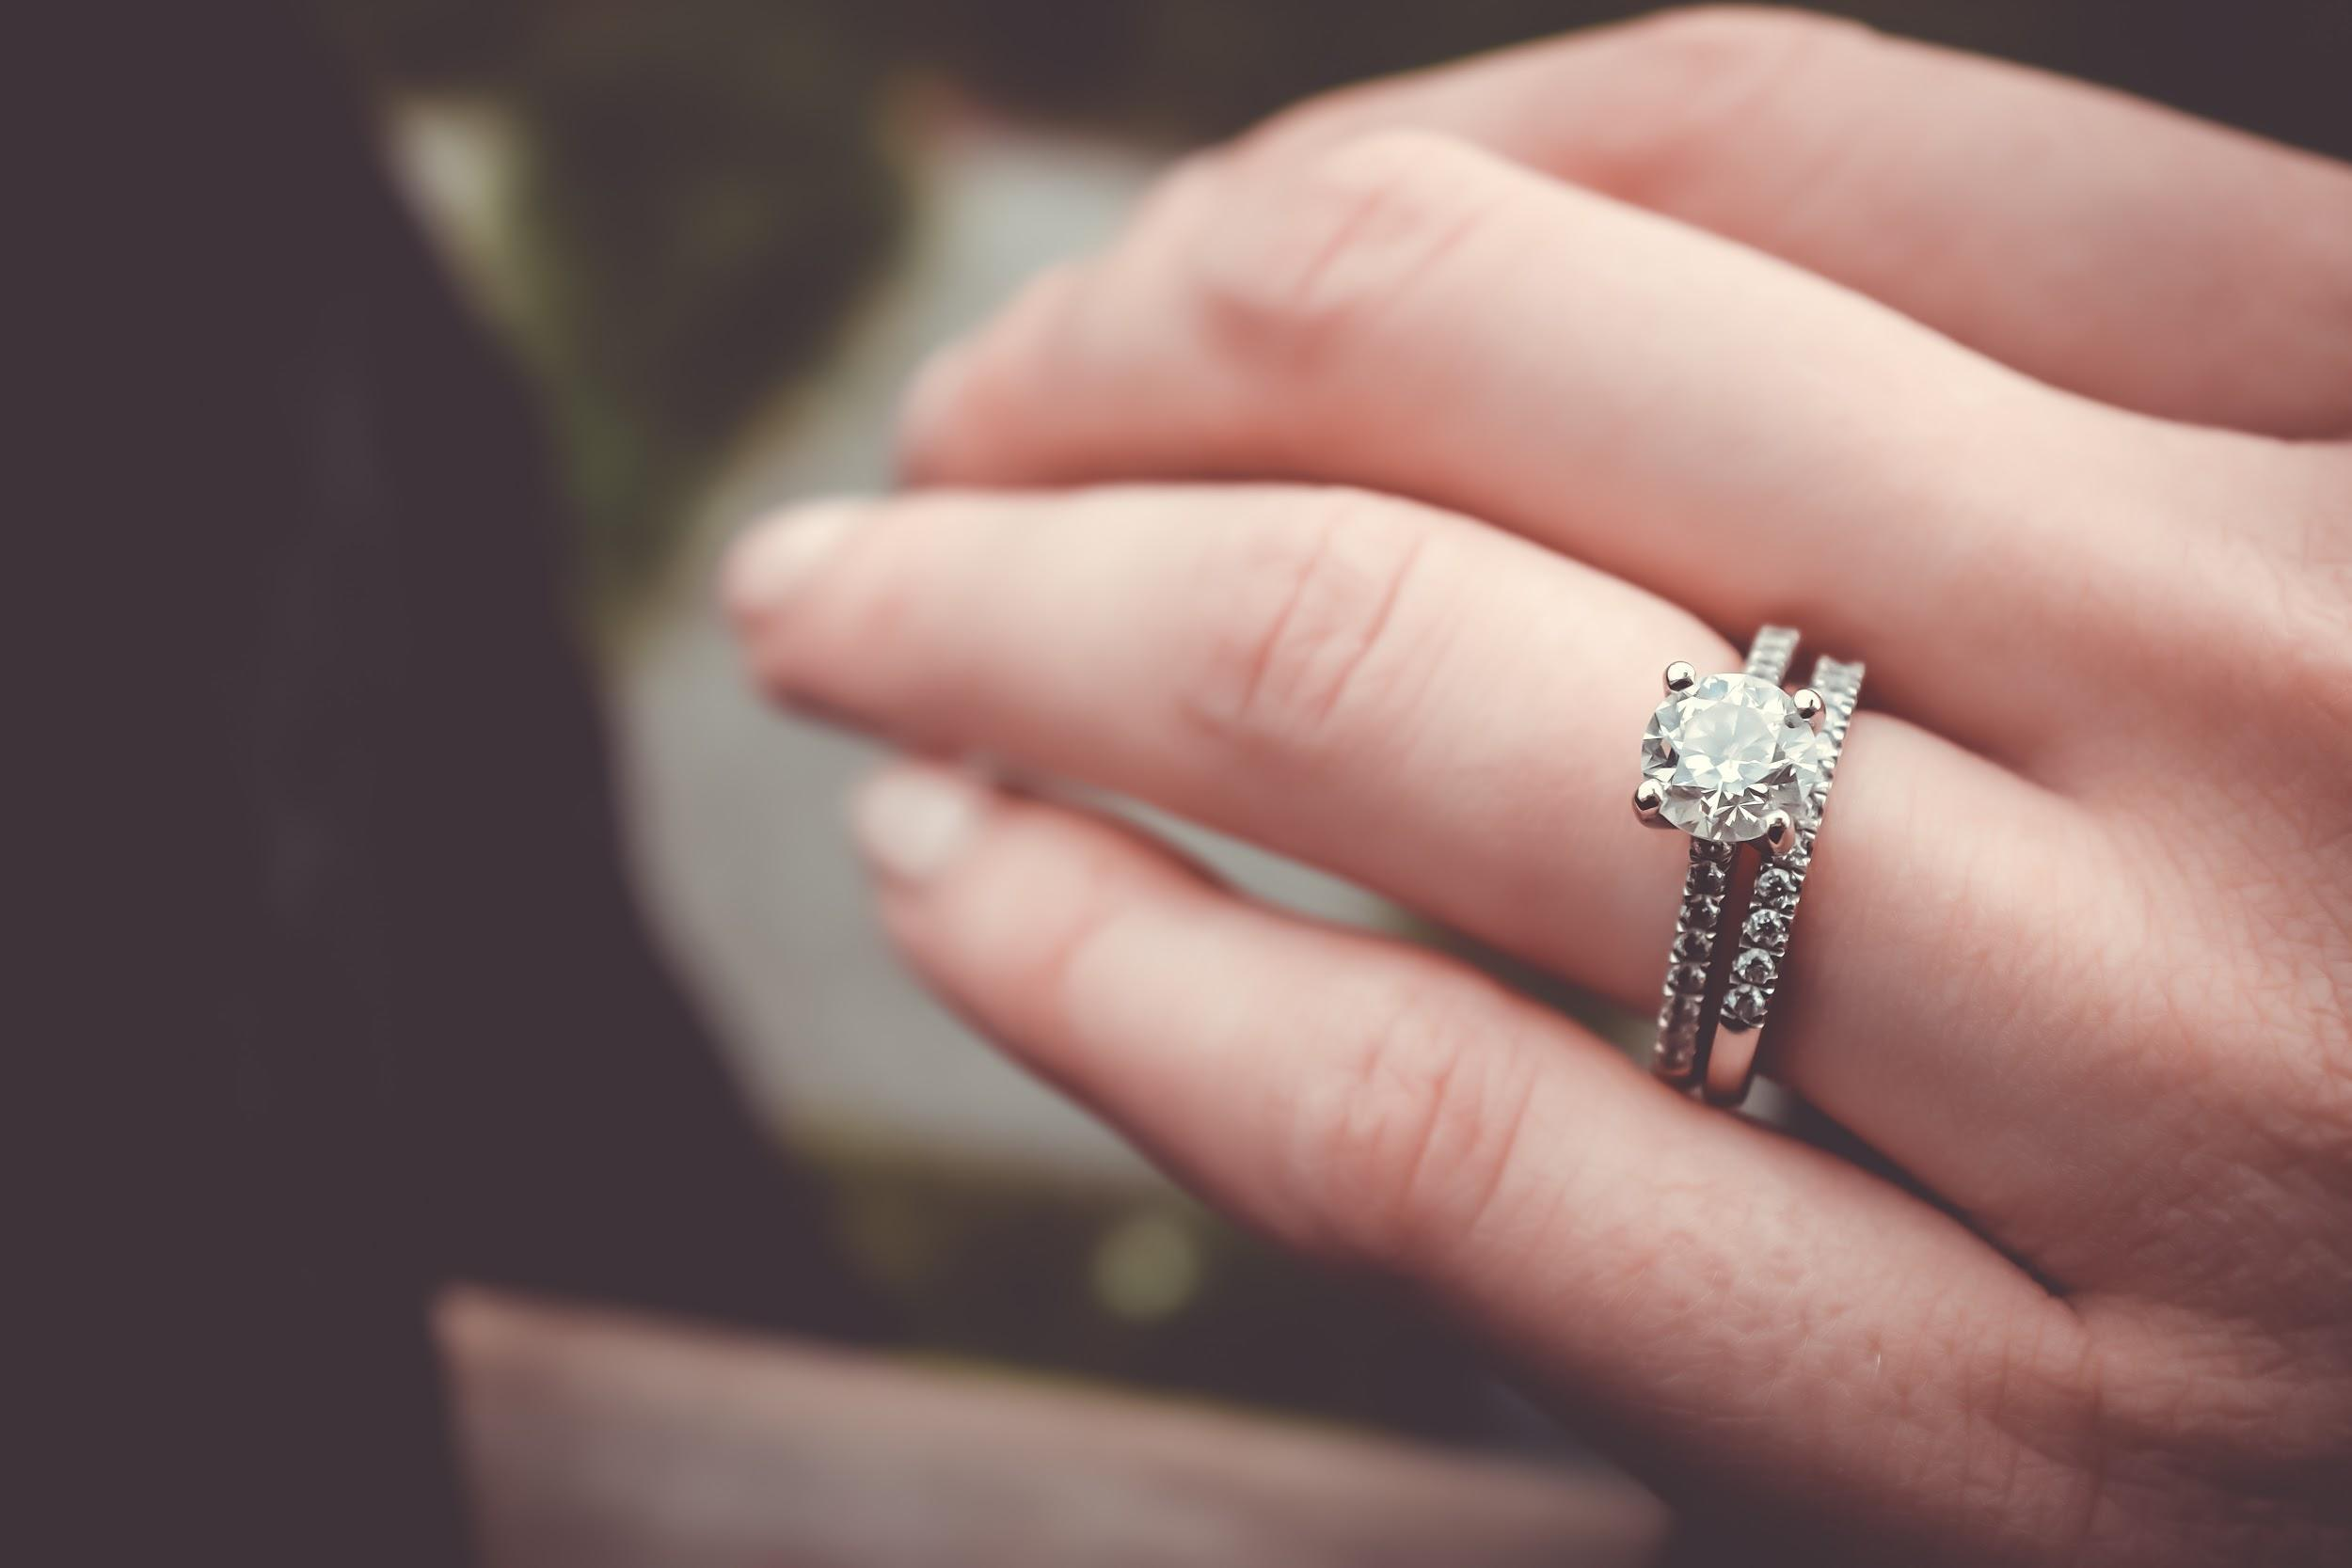 5 Rules on How to Rock Your Engagement Ring – ottawa wedding journal